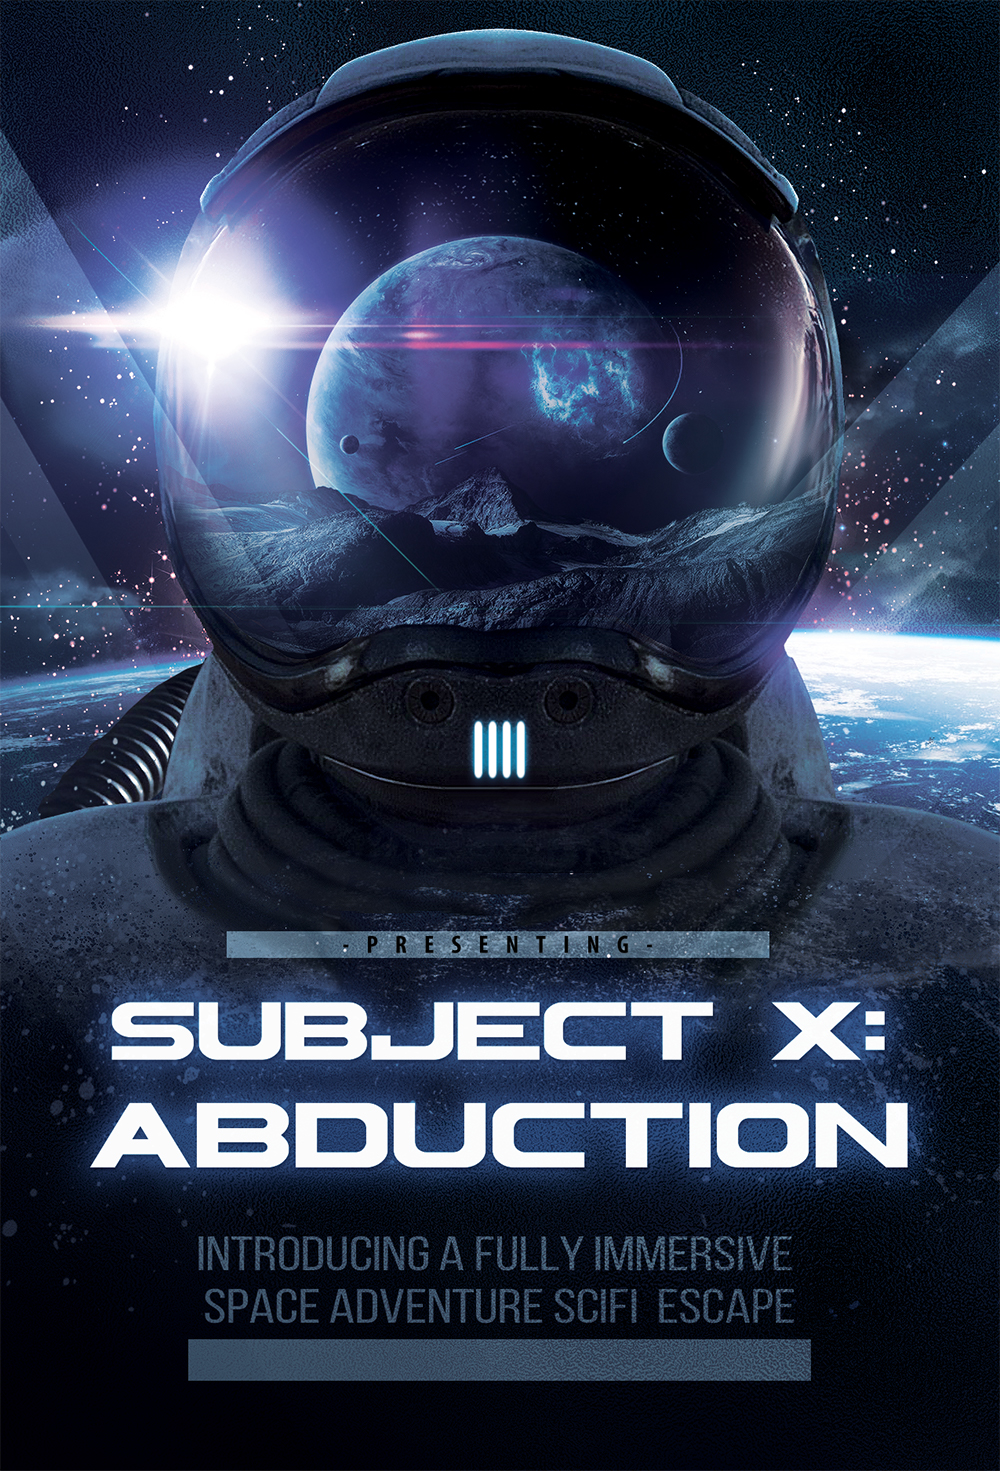 SUBJECTXABDUCTION FLYER GENERIC.jpg